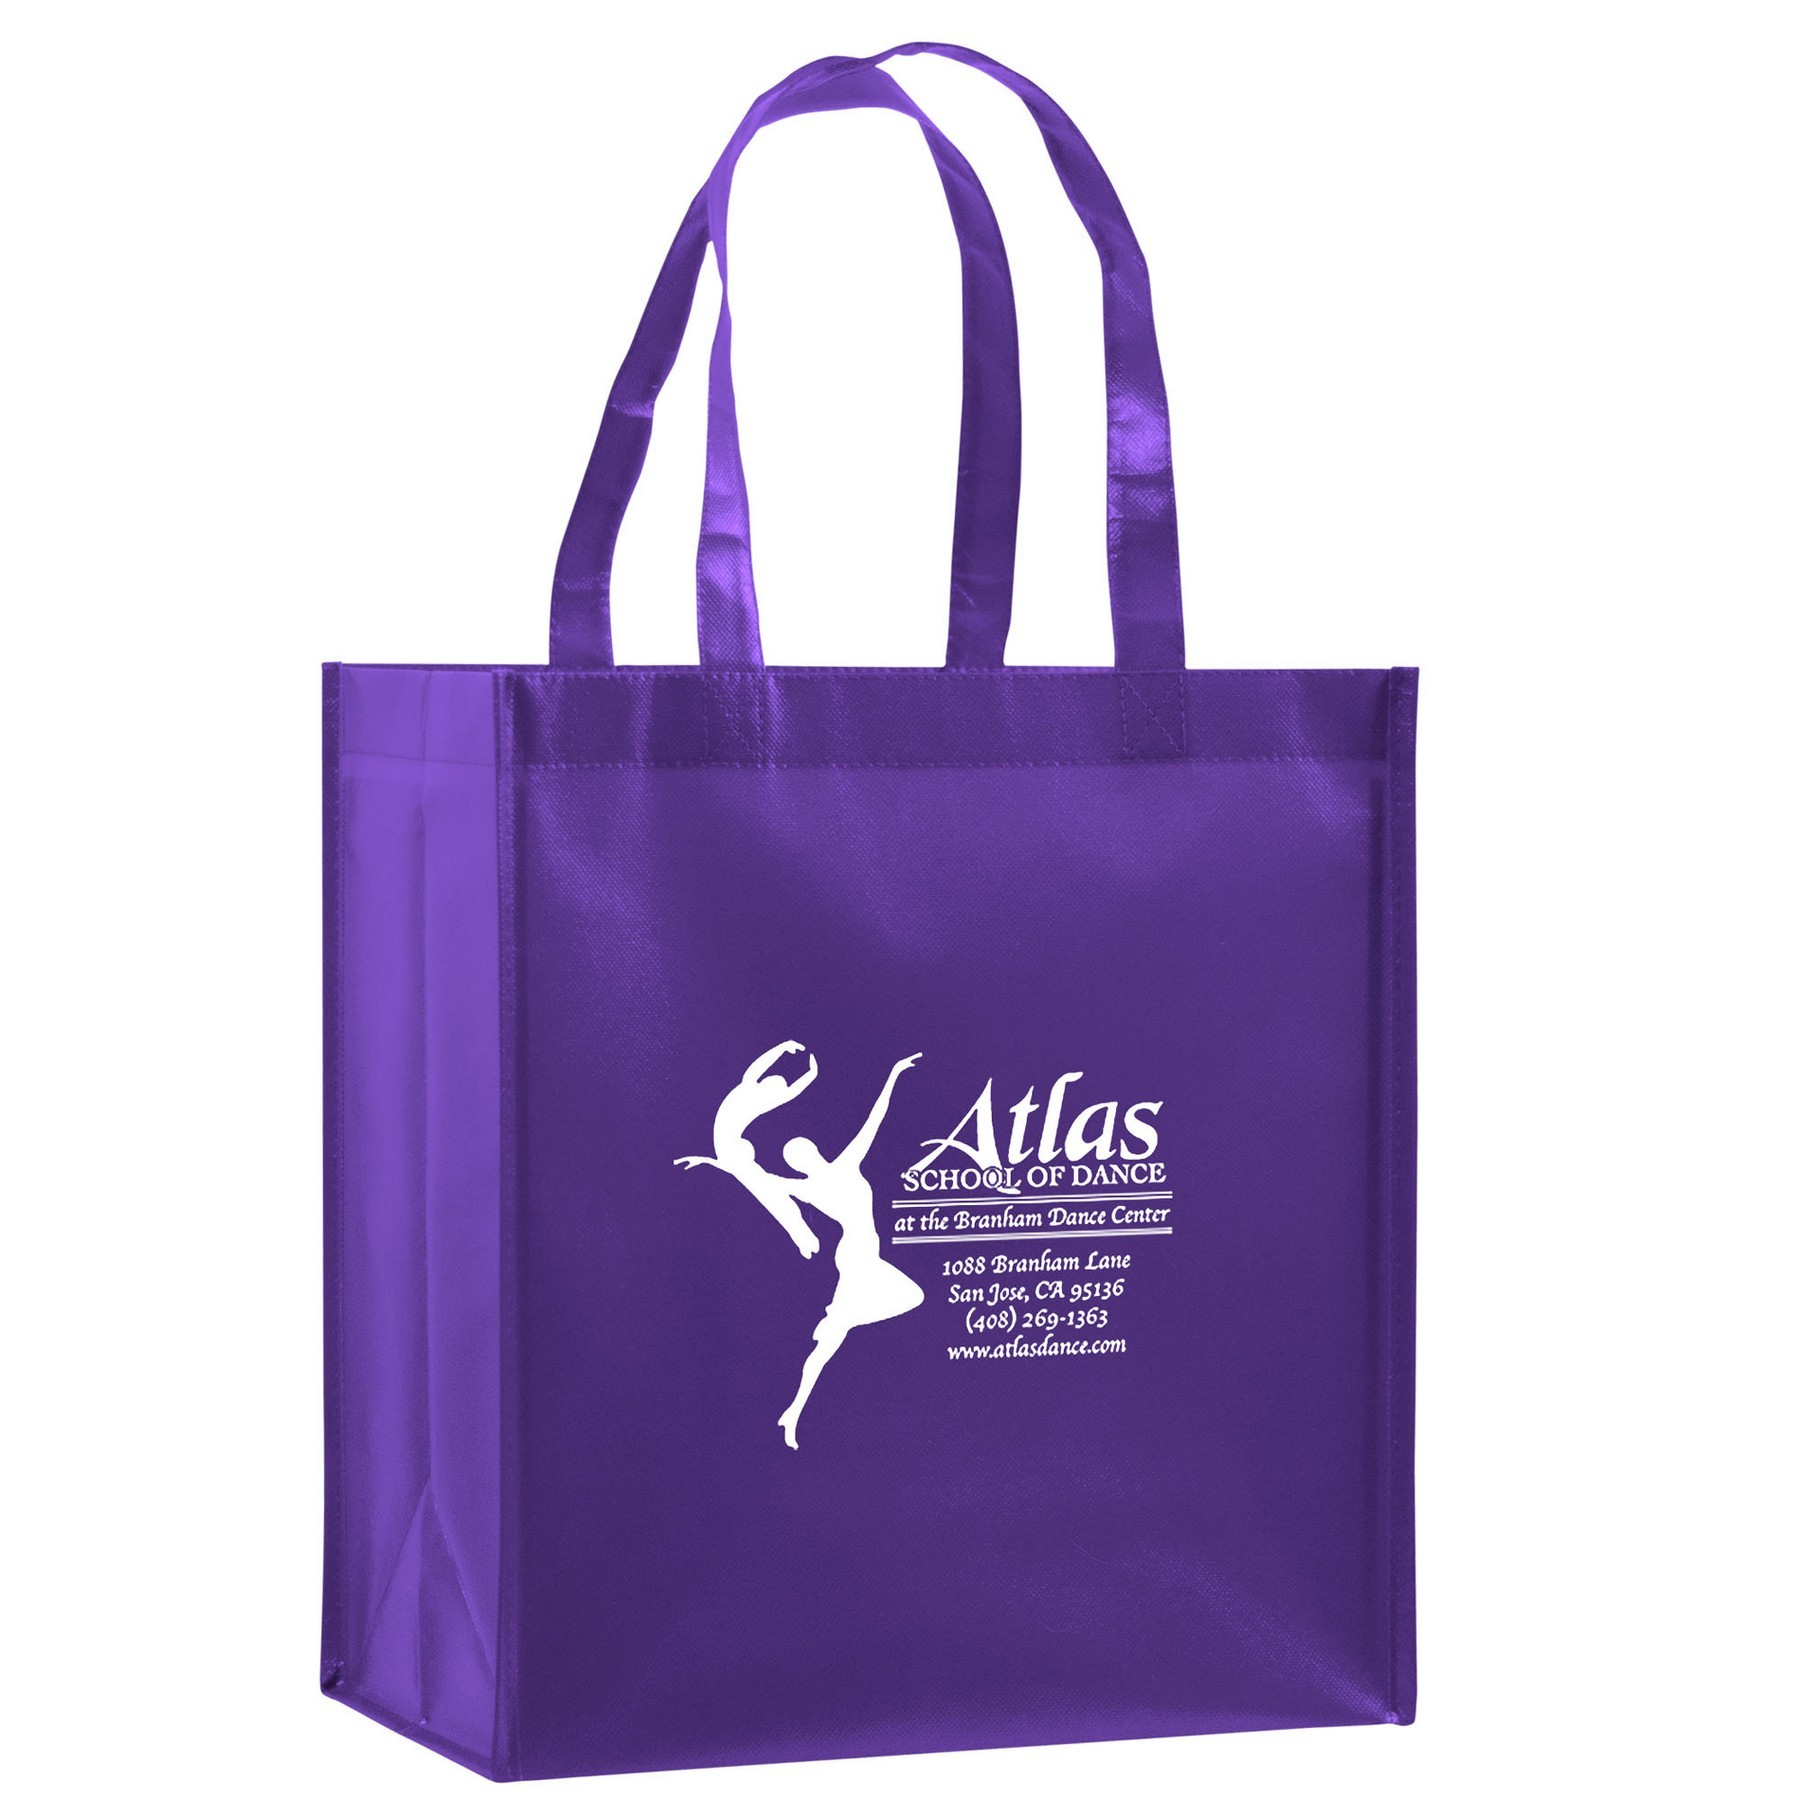 tote- bag- tote bag- promotional product- promo item- local- VA- trade show- Undercover Printer